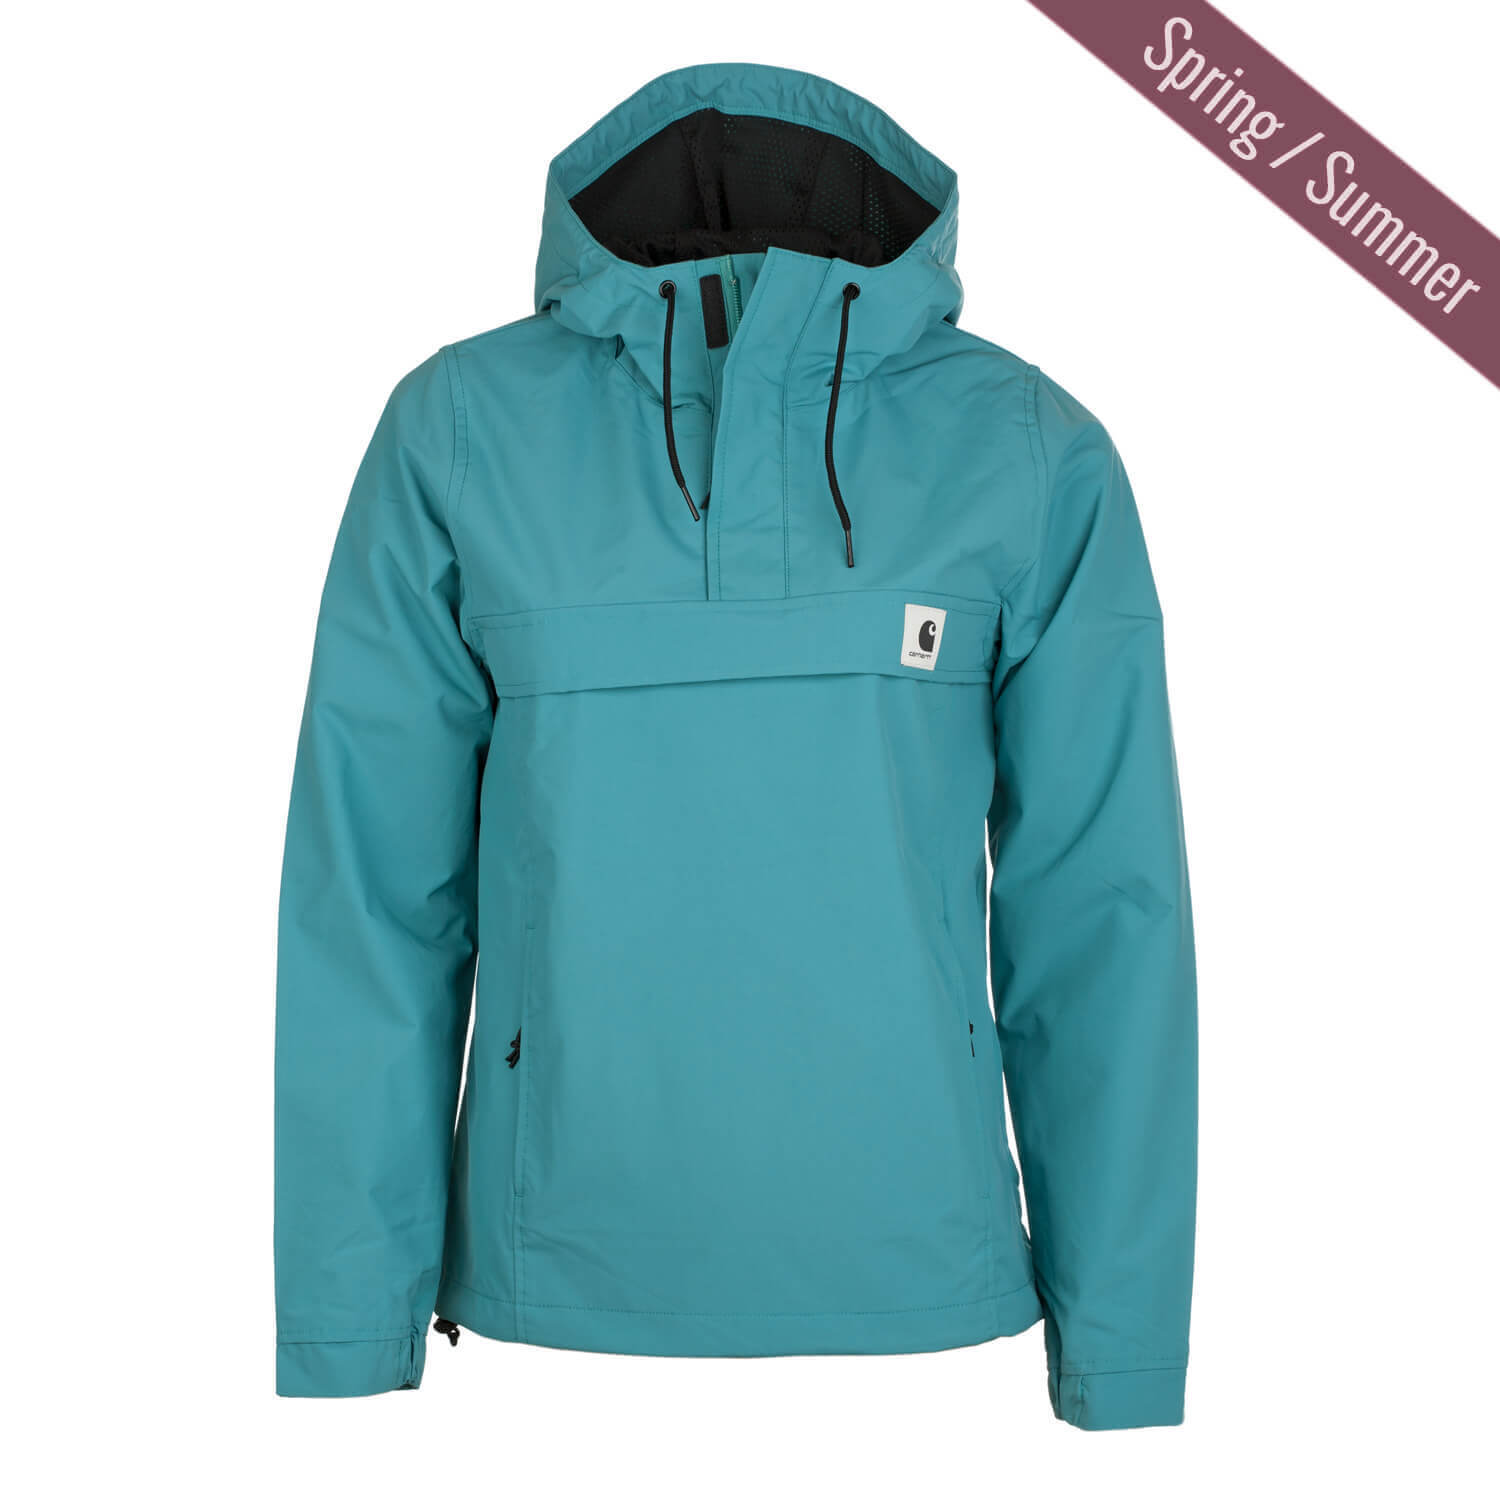 carhartt w nimbus windbreaker jacke soft teal t rkis damen sommer schlupfjacke drop. Black Bedroom Furniture Sets. Home Design Ideas